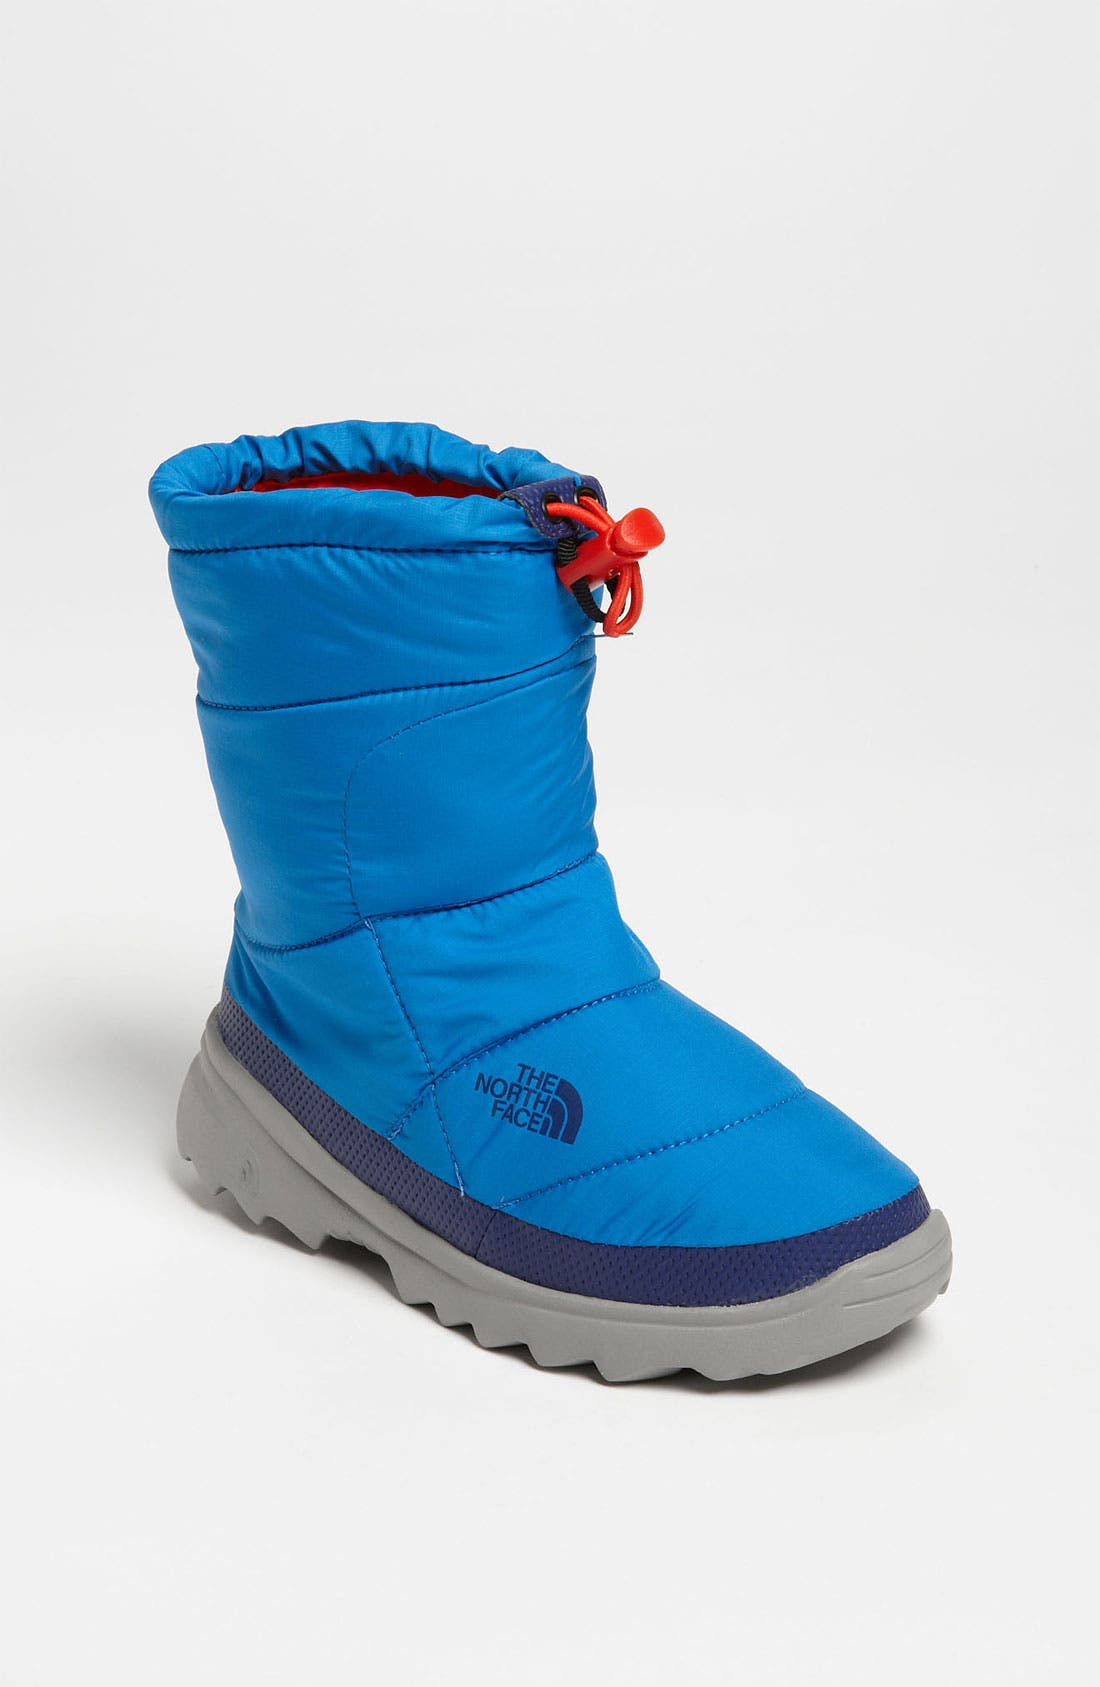 Main Image - The North Face 'Nuptse' Boot (Little Kid & Big Kid)